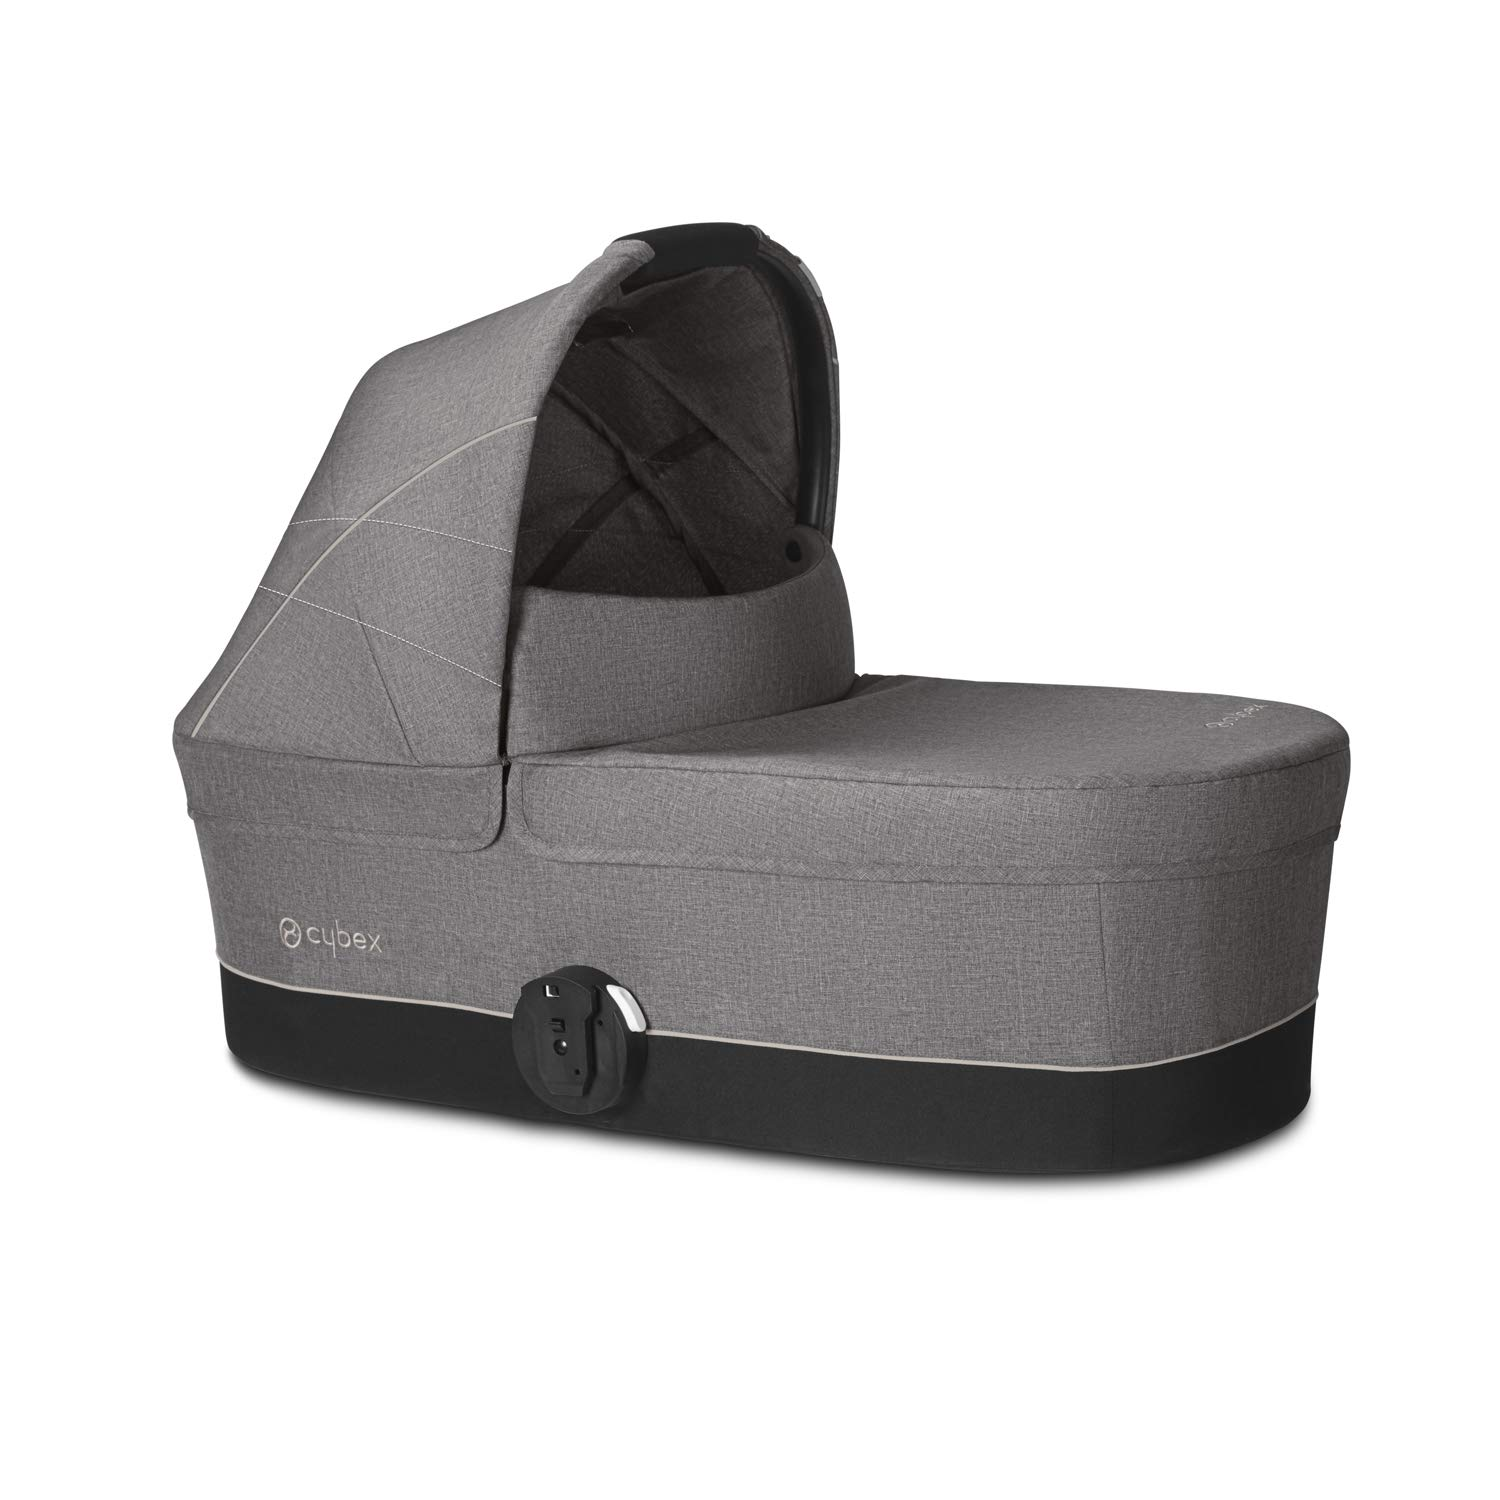 Cybex Gold Carrycot, Lavastone Black 518001149